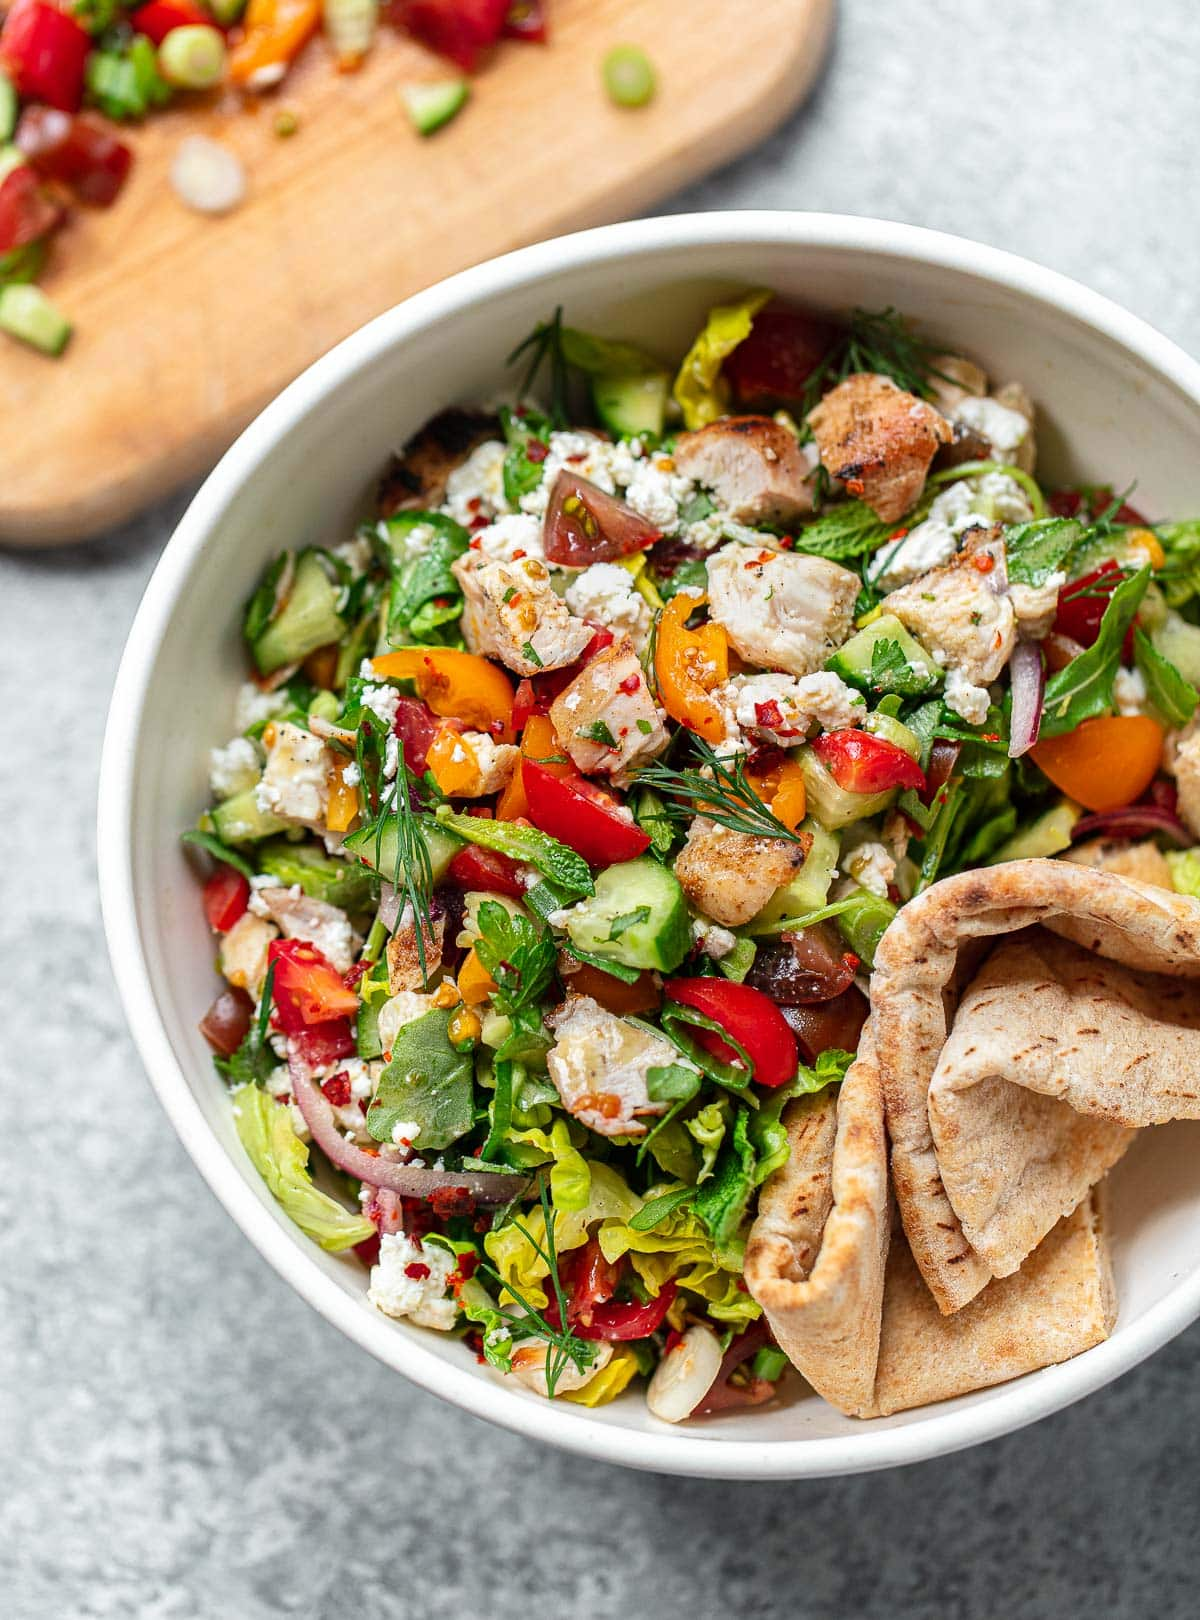 A bowl of chopped chicken salad with cucumbers and vegetables.